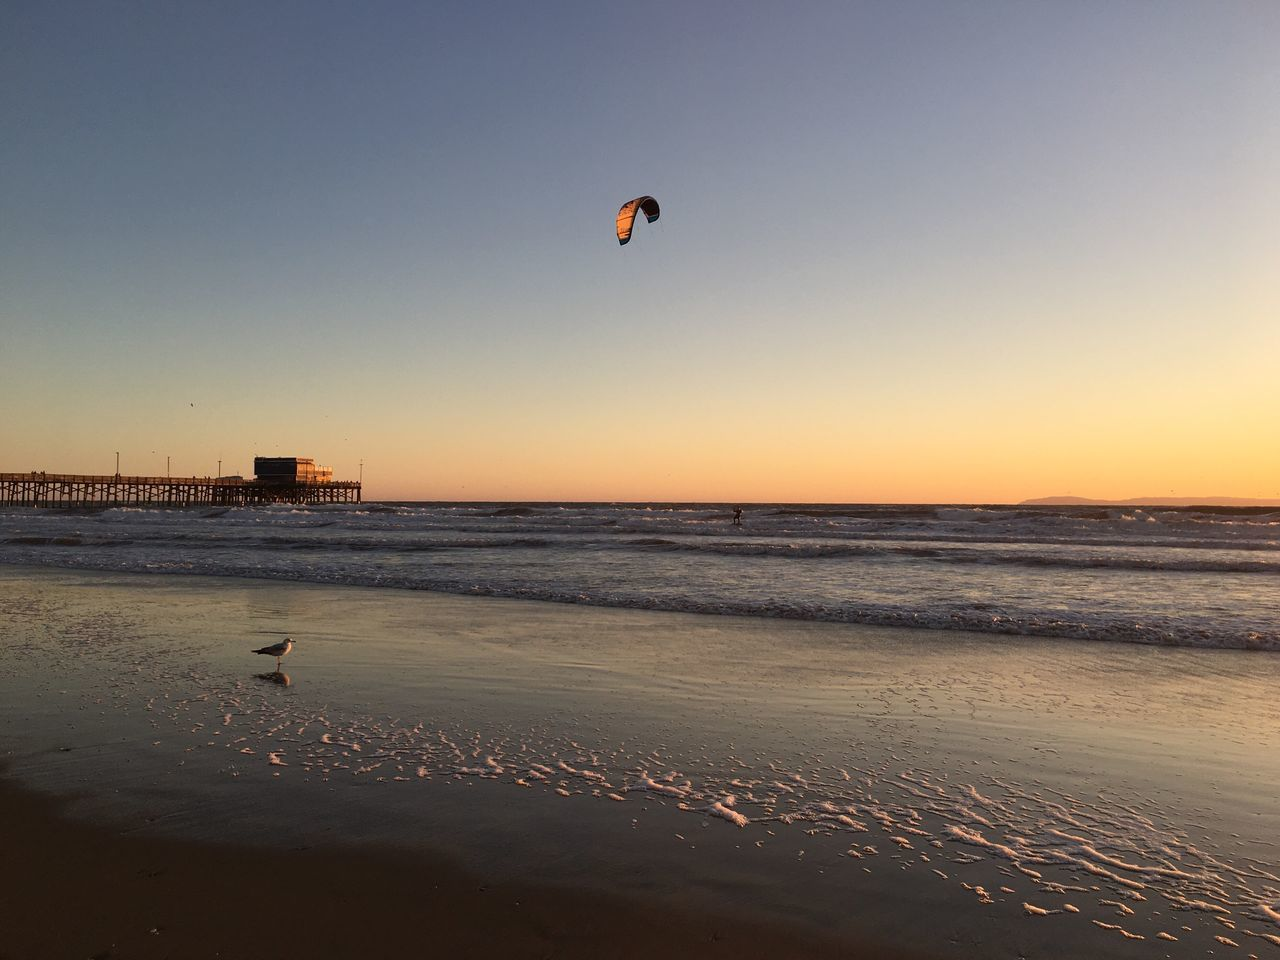 Kite boarding Sea Beach Horizon Over Water Clear Sky Sand Nature Unrecognizable Person Water Beauty In Nature Outdoors Leisure Activity Tranquil Scene Lifestyles Scenics One Person Sunset Tranquility Extreme Sports Kiteboarding